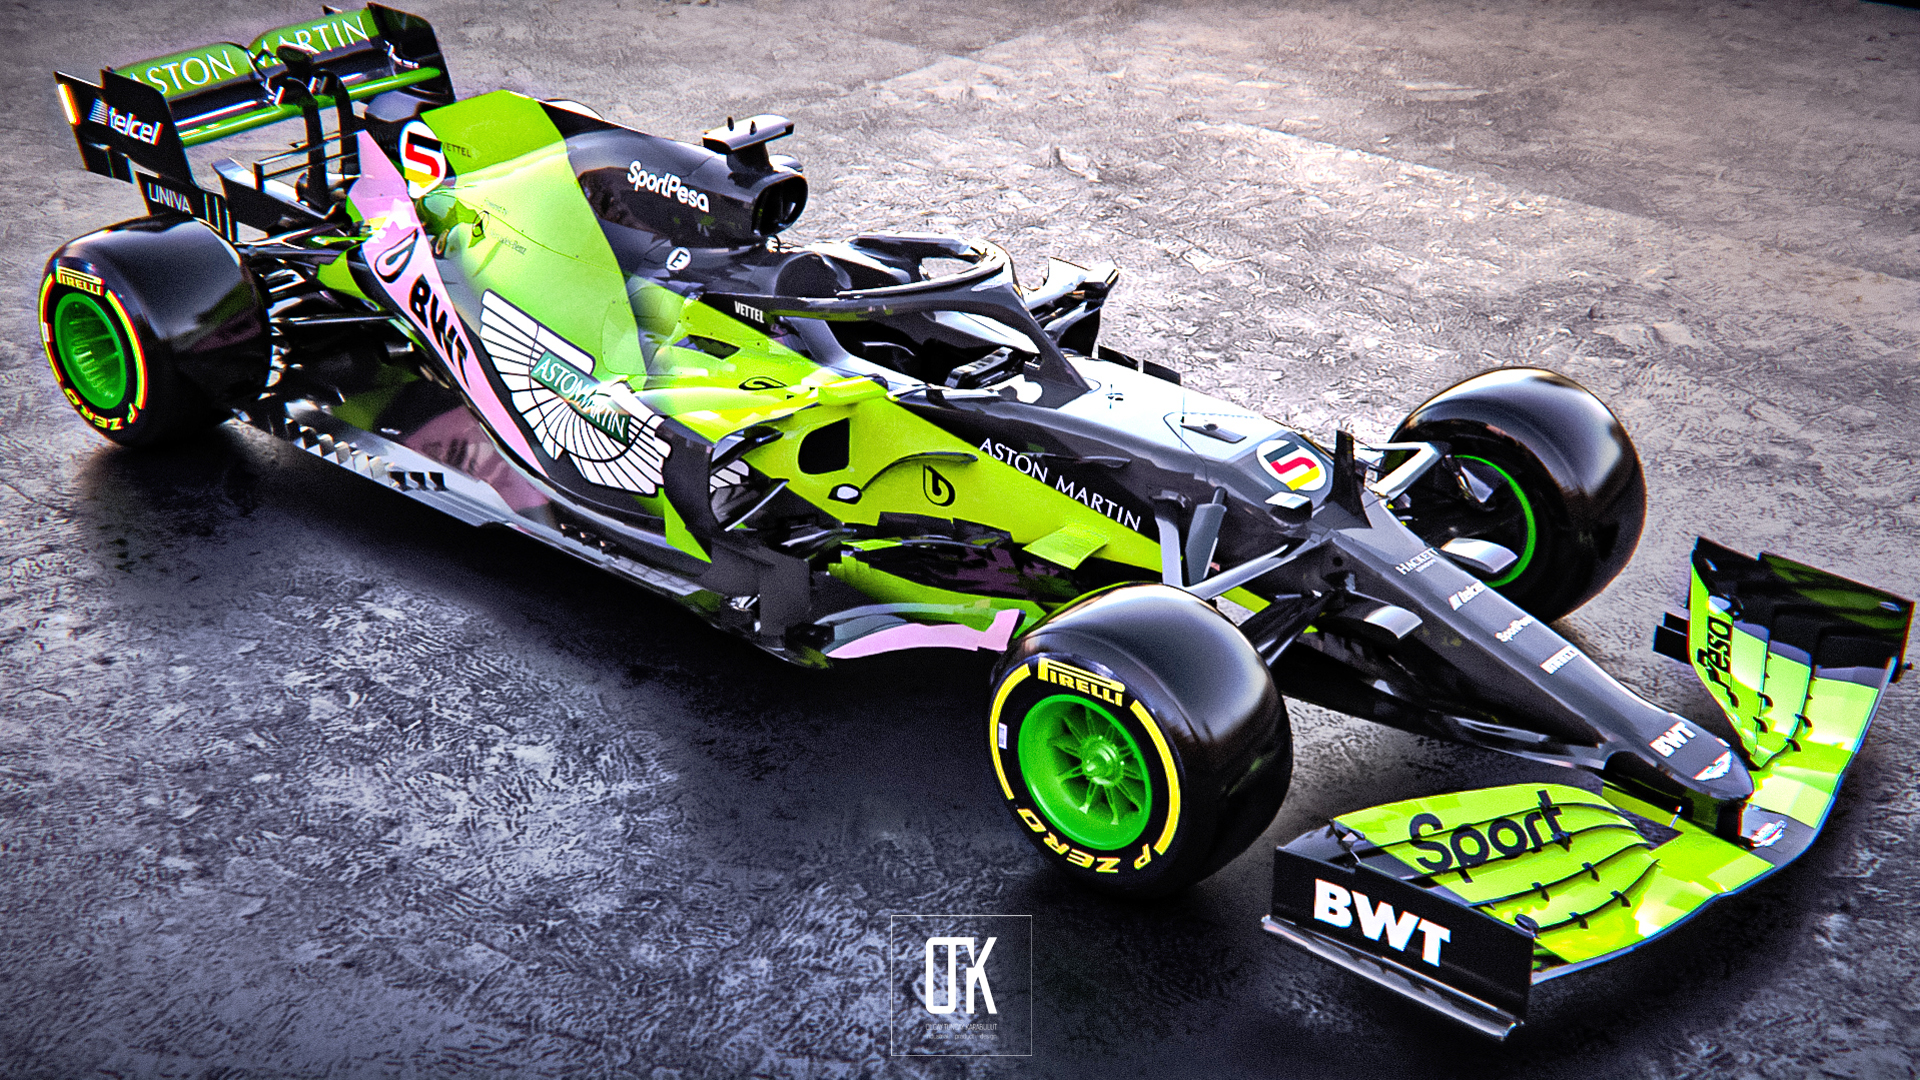 Is This What The Aston Martin F1 Car Could Look Like Carscoops